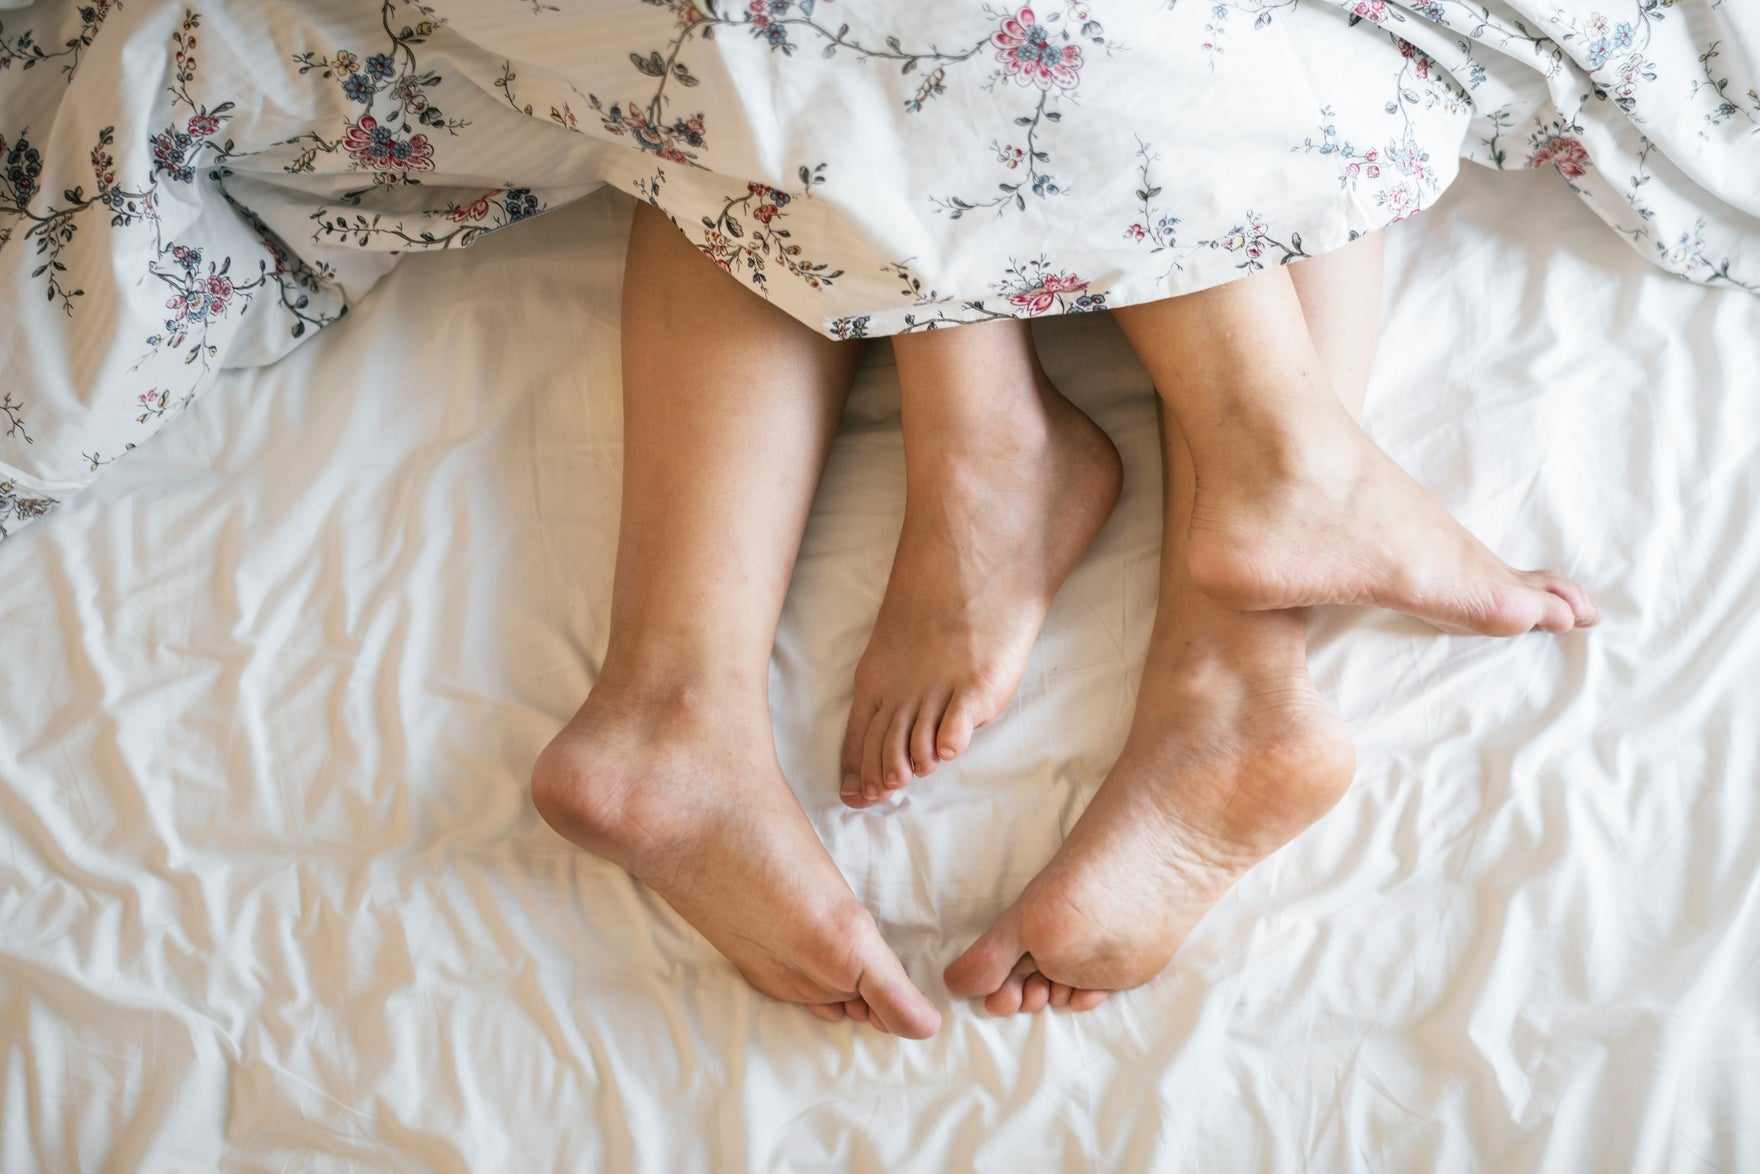 Bedridden | Celebrate Your Anniversary Under the Covers